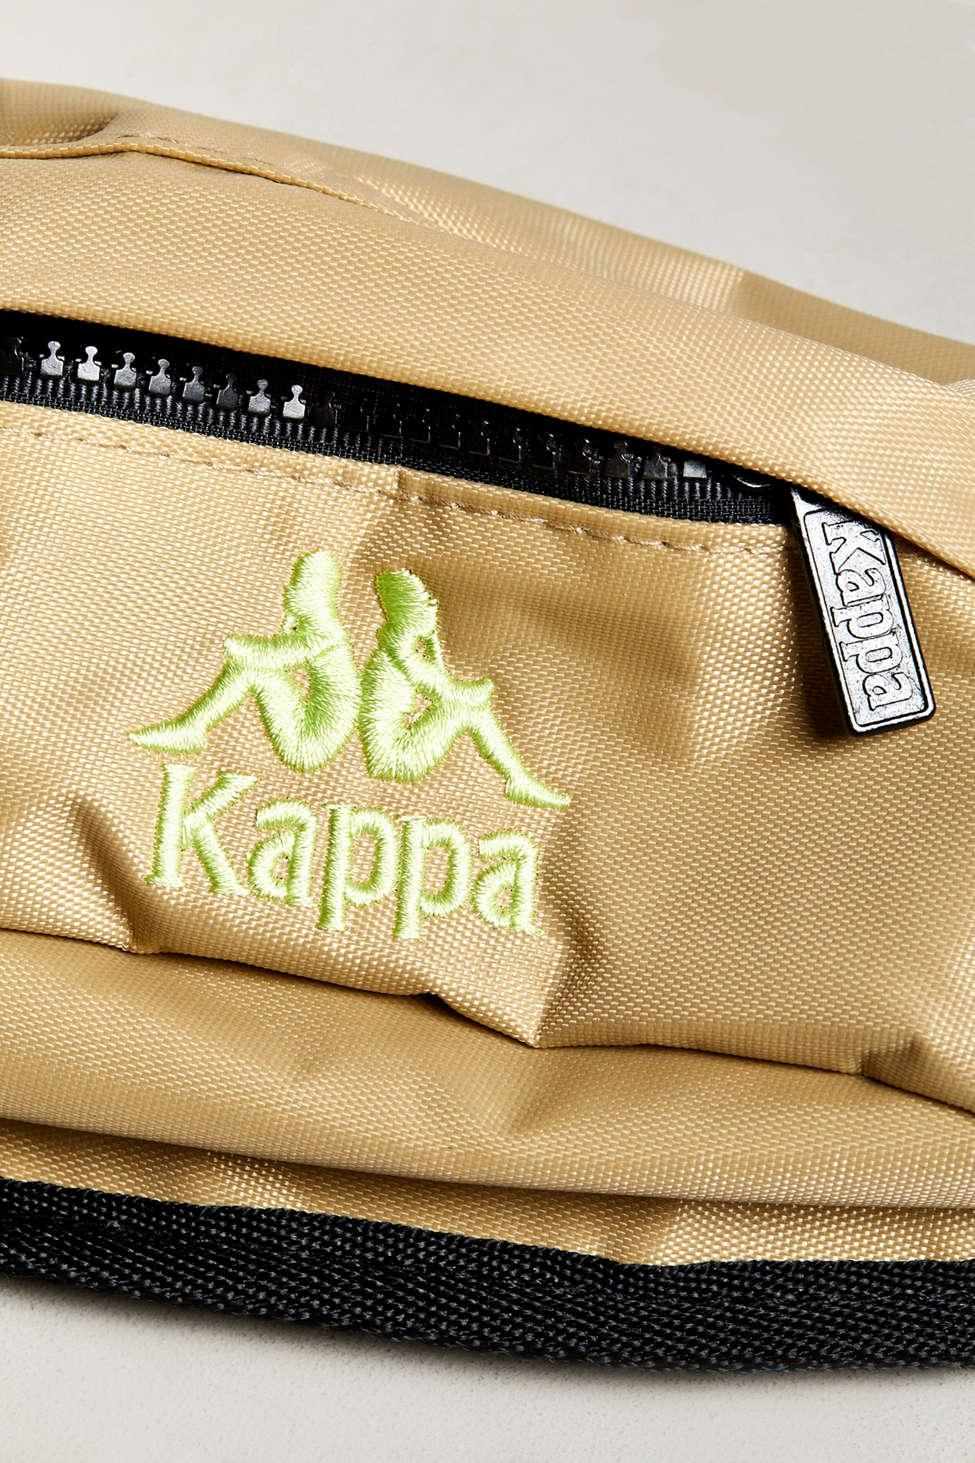 df61bde80c Kappa Natural Uo Exclusive Anais Authentic Sporty Sling Bag for men